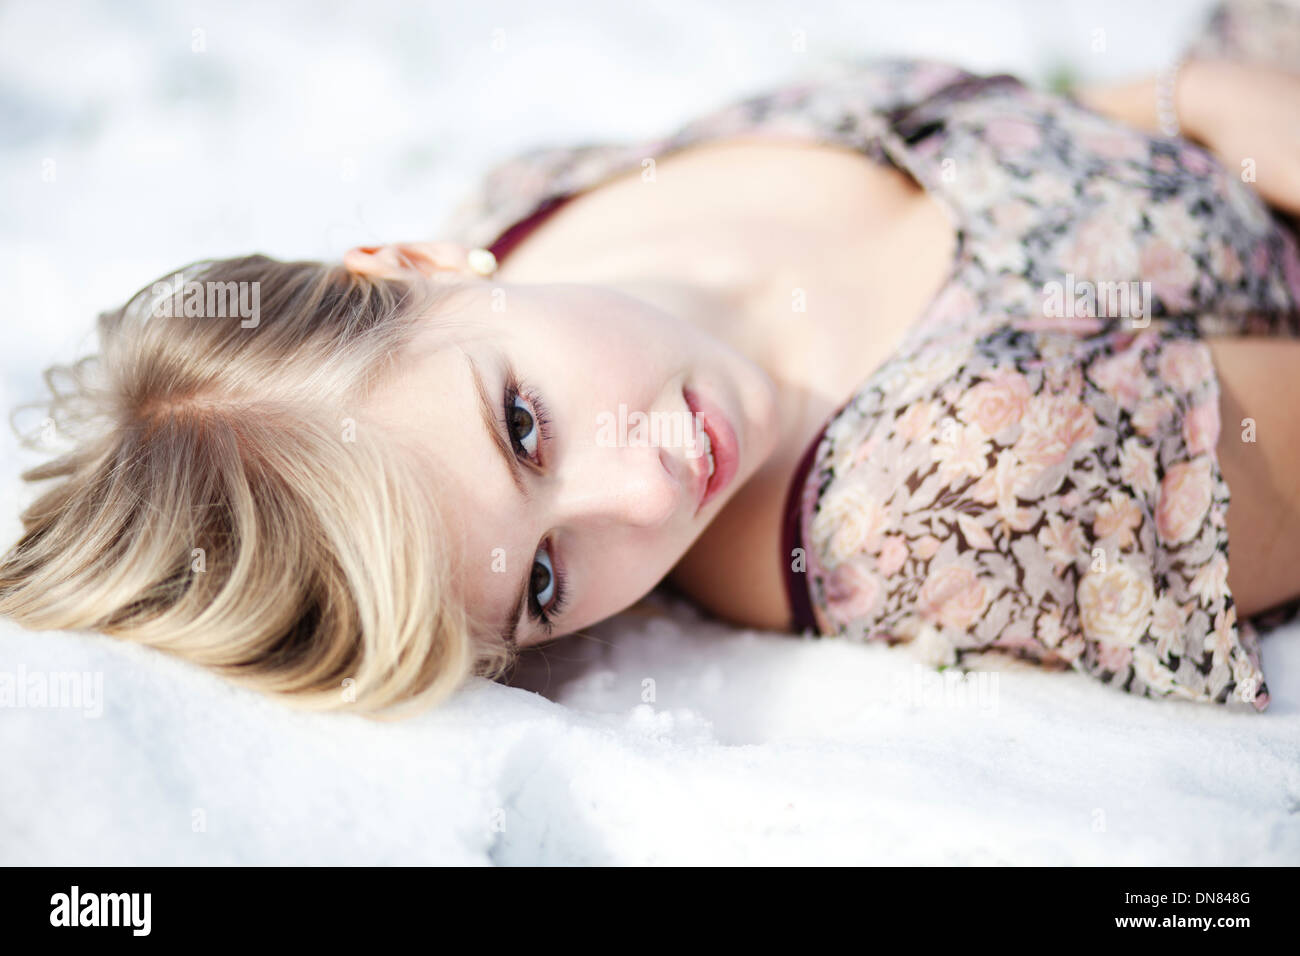 Young woman lying in snow, portrait - Stock Image